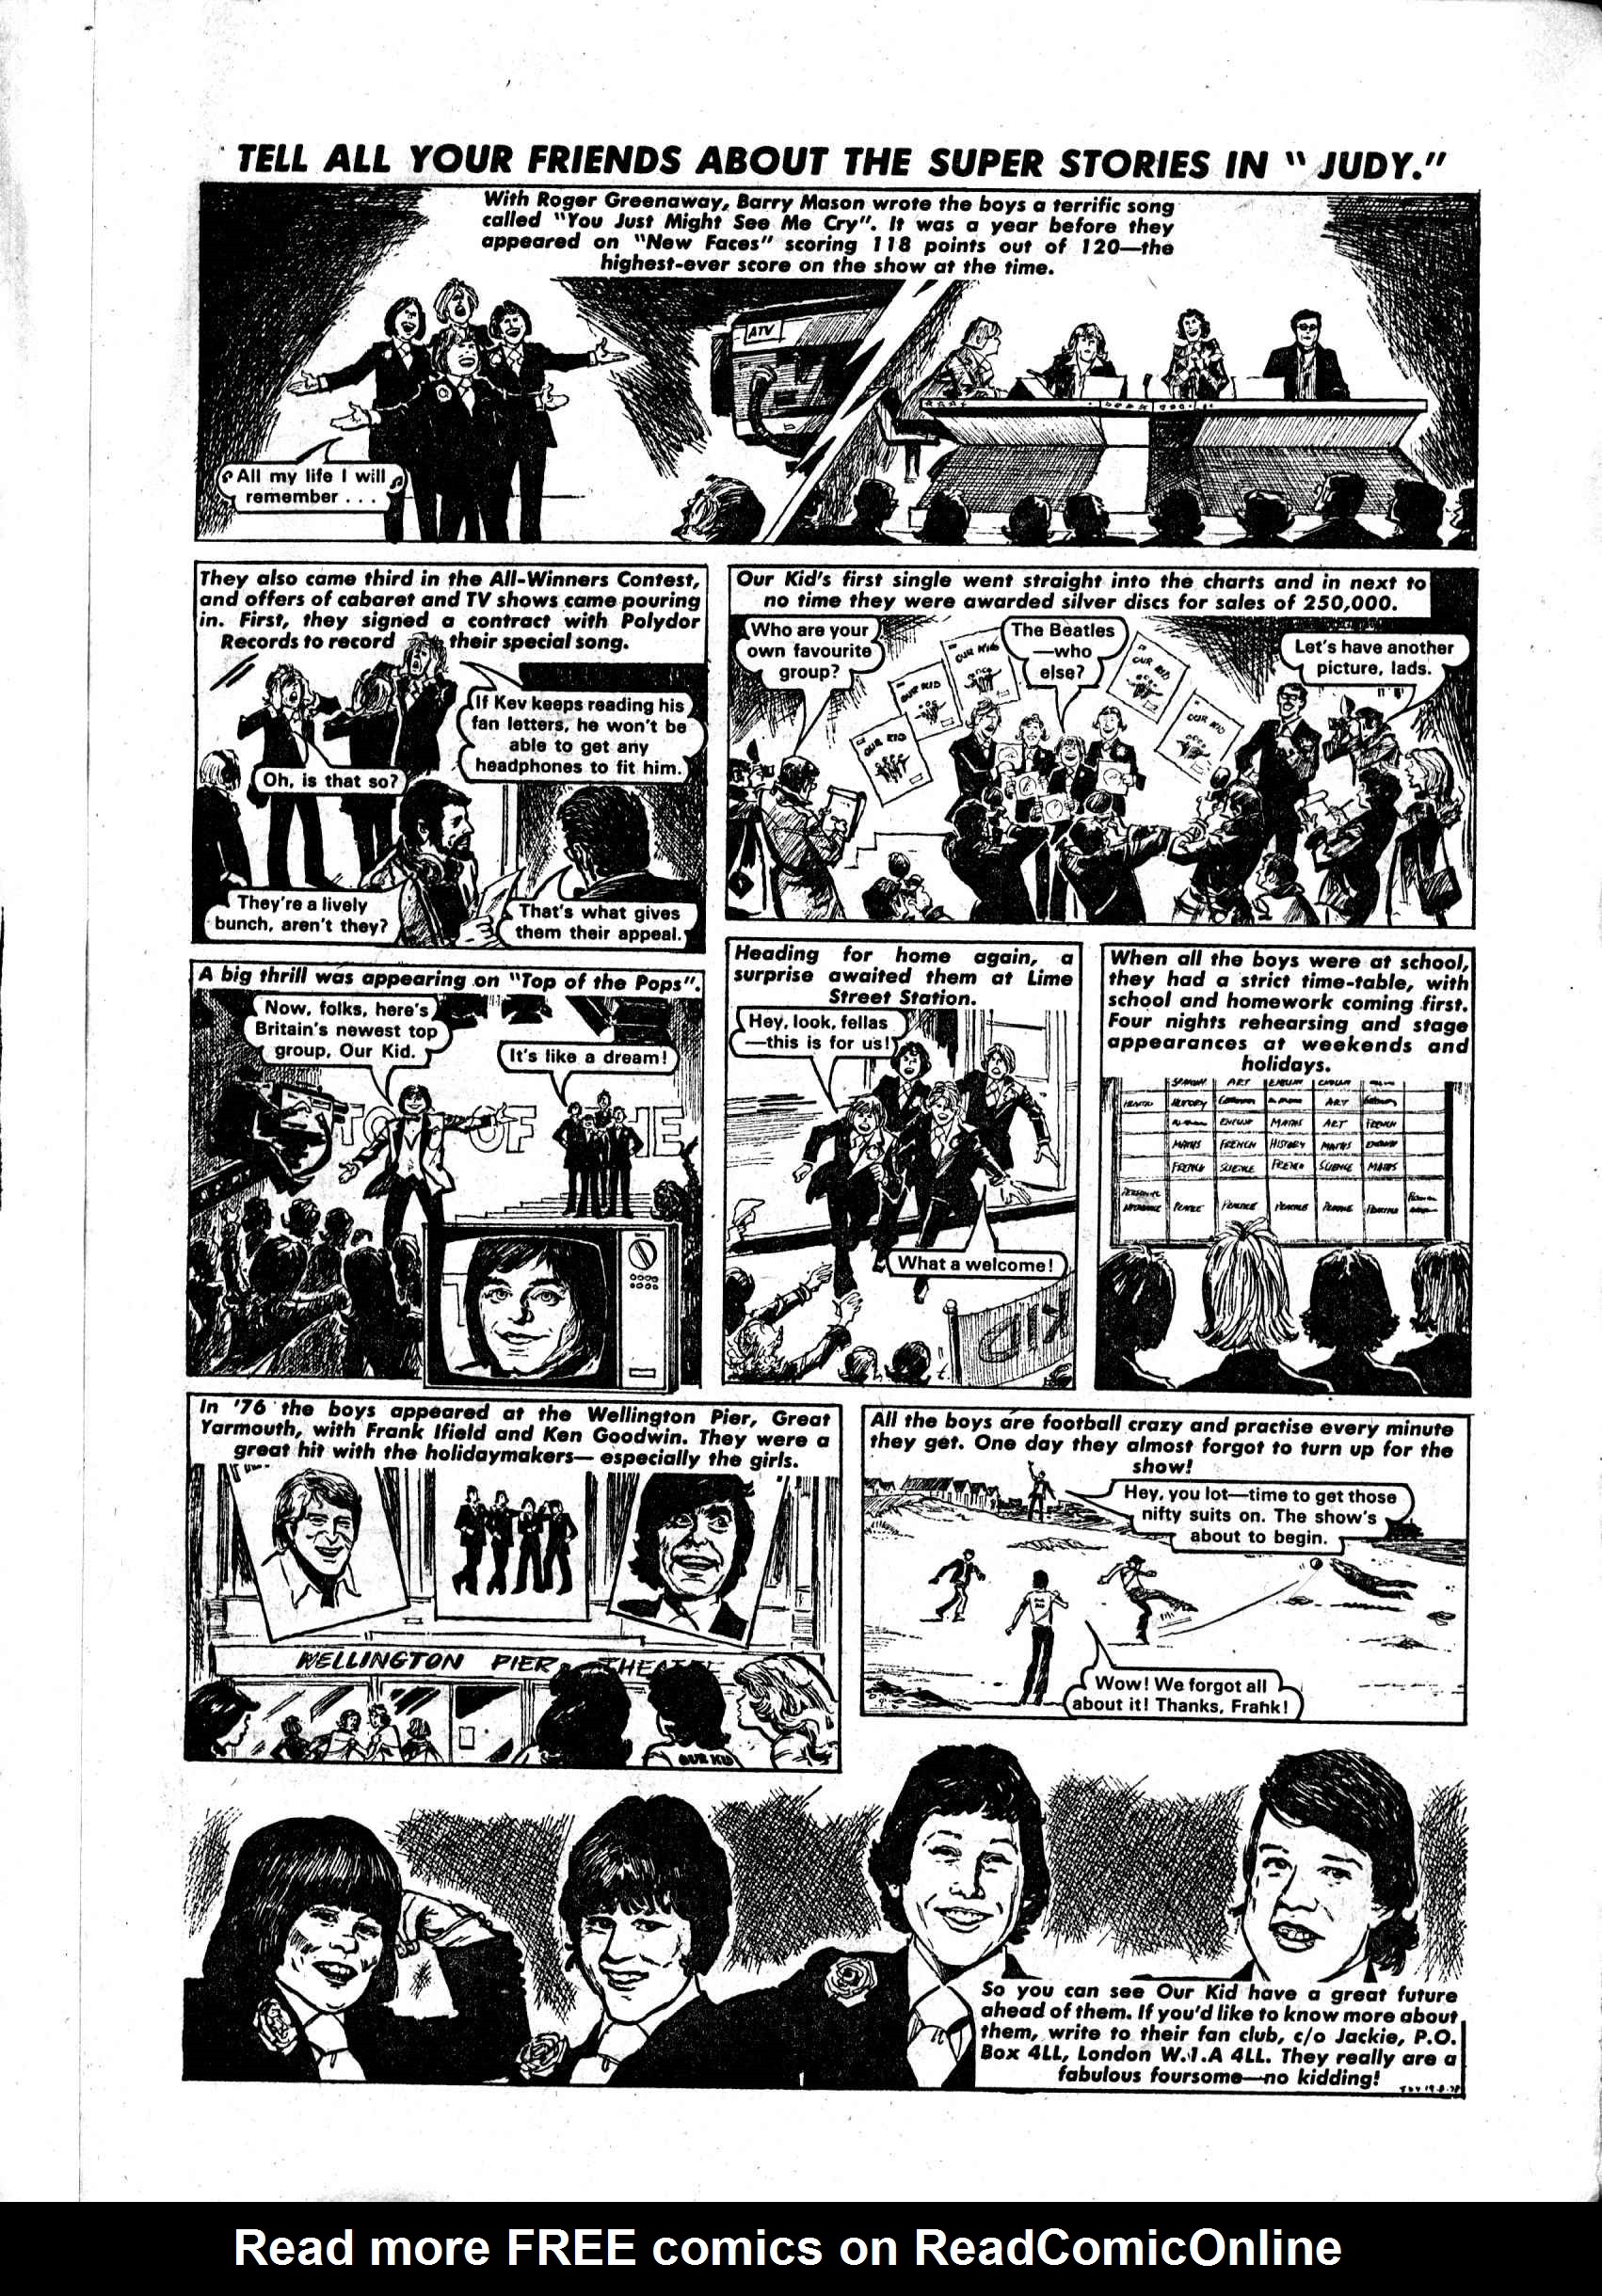 Read online Judy comic -  Issue #971 - 23